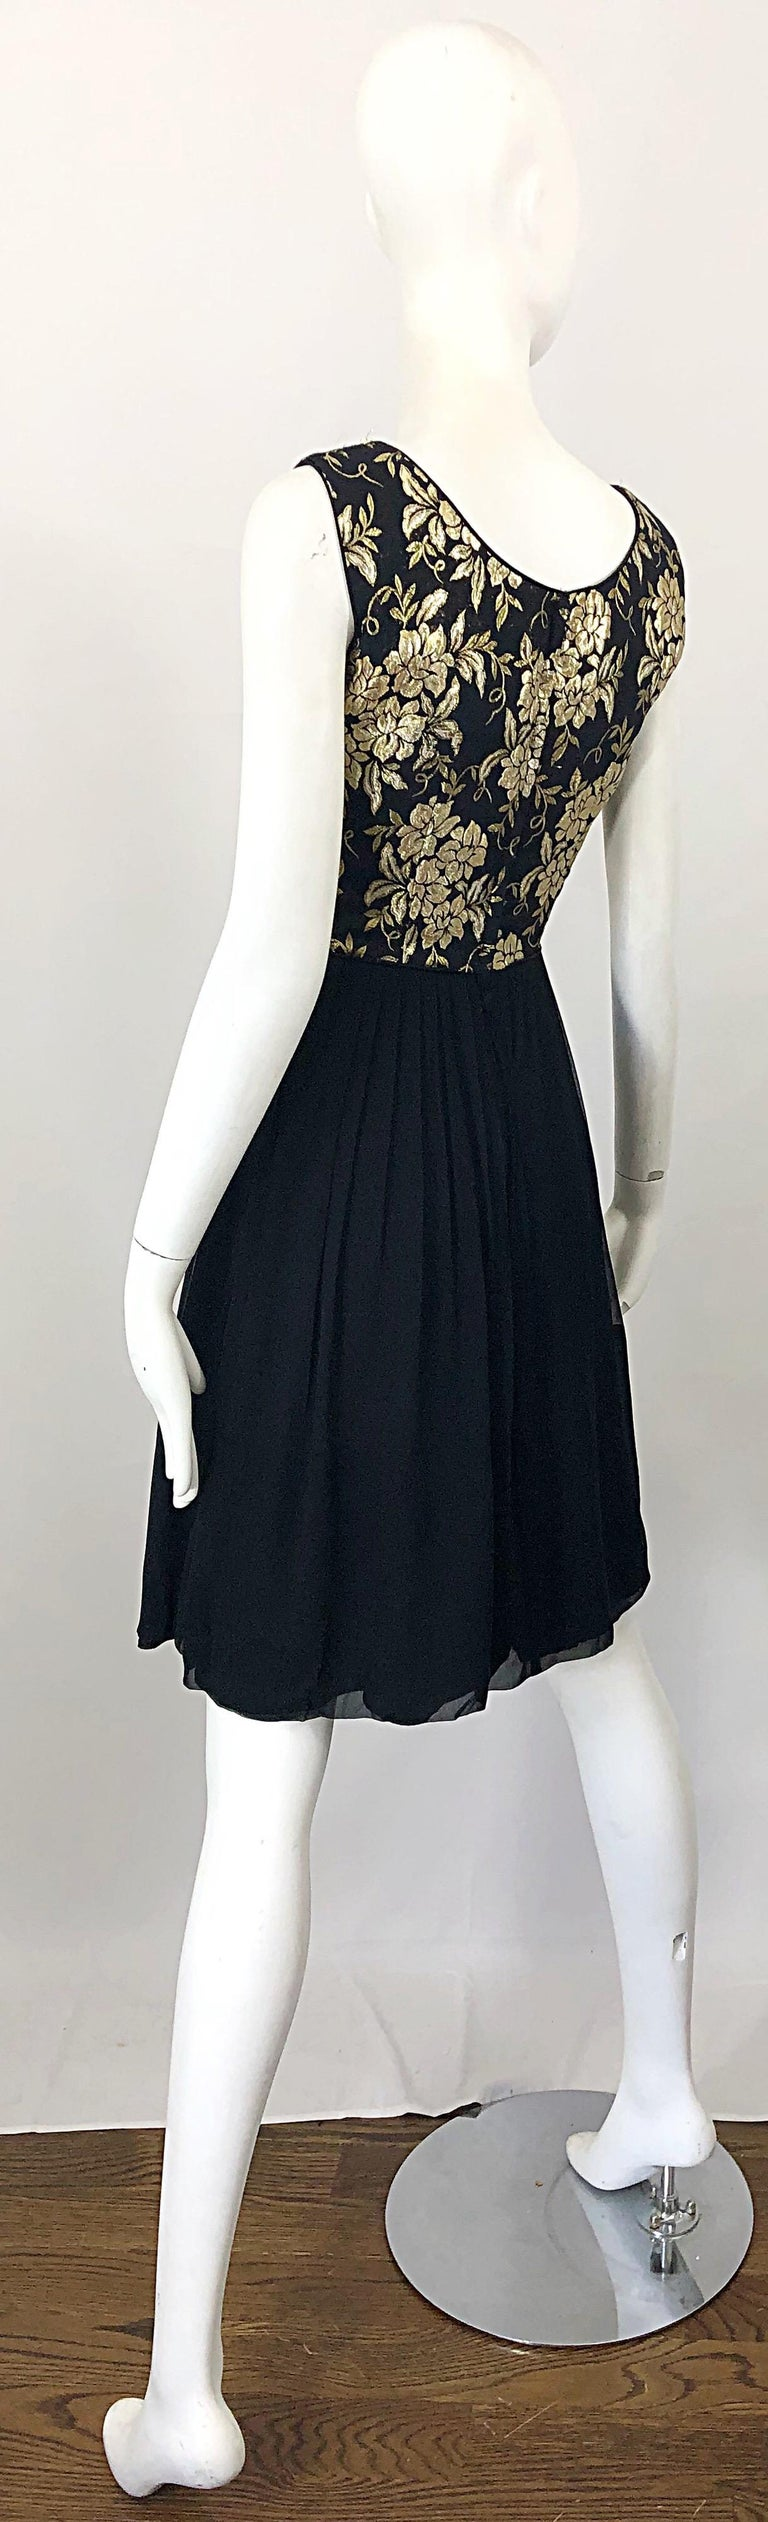 1950s Demi Couture Gold + Black Silk Brocade and Chiffon Vintage 50s Dress For Sale 8